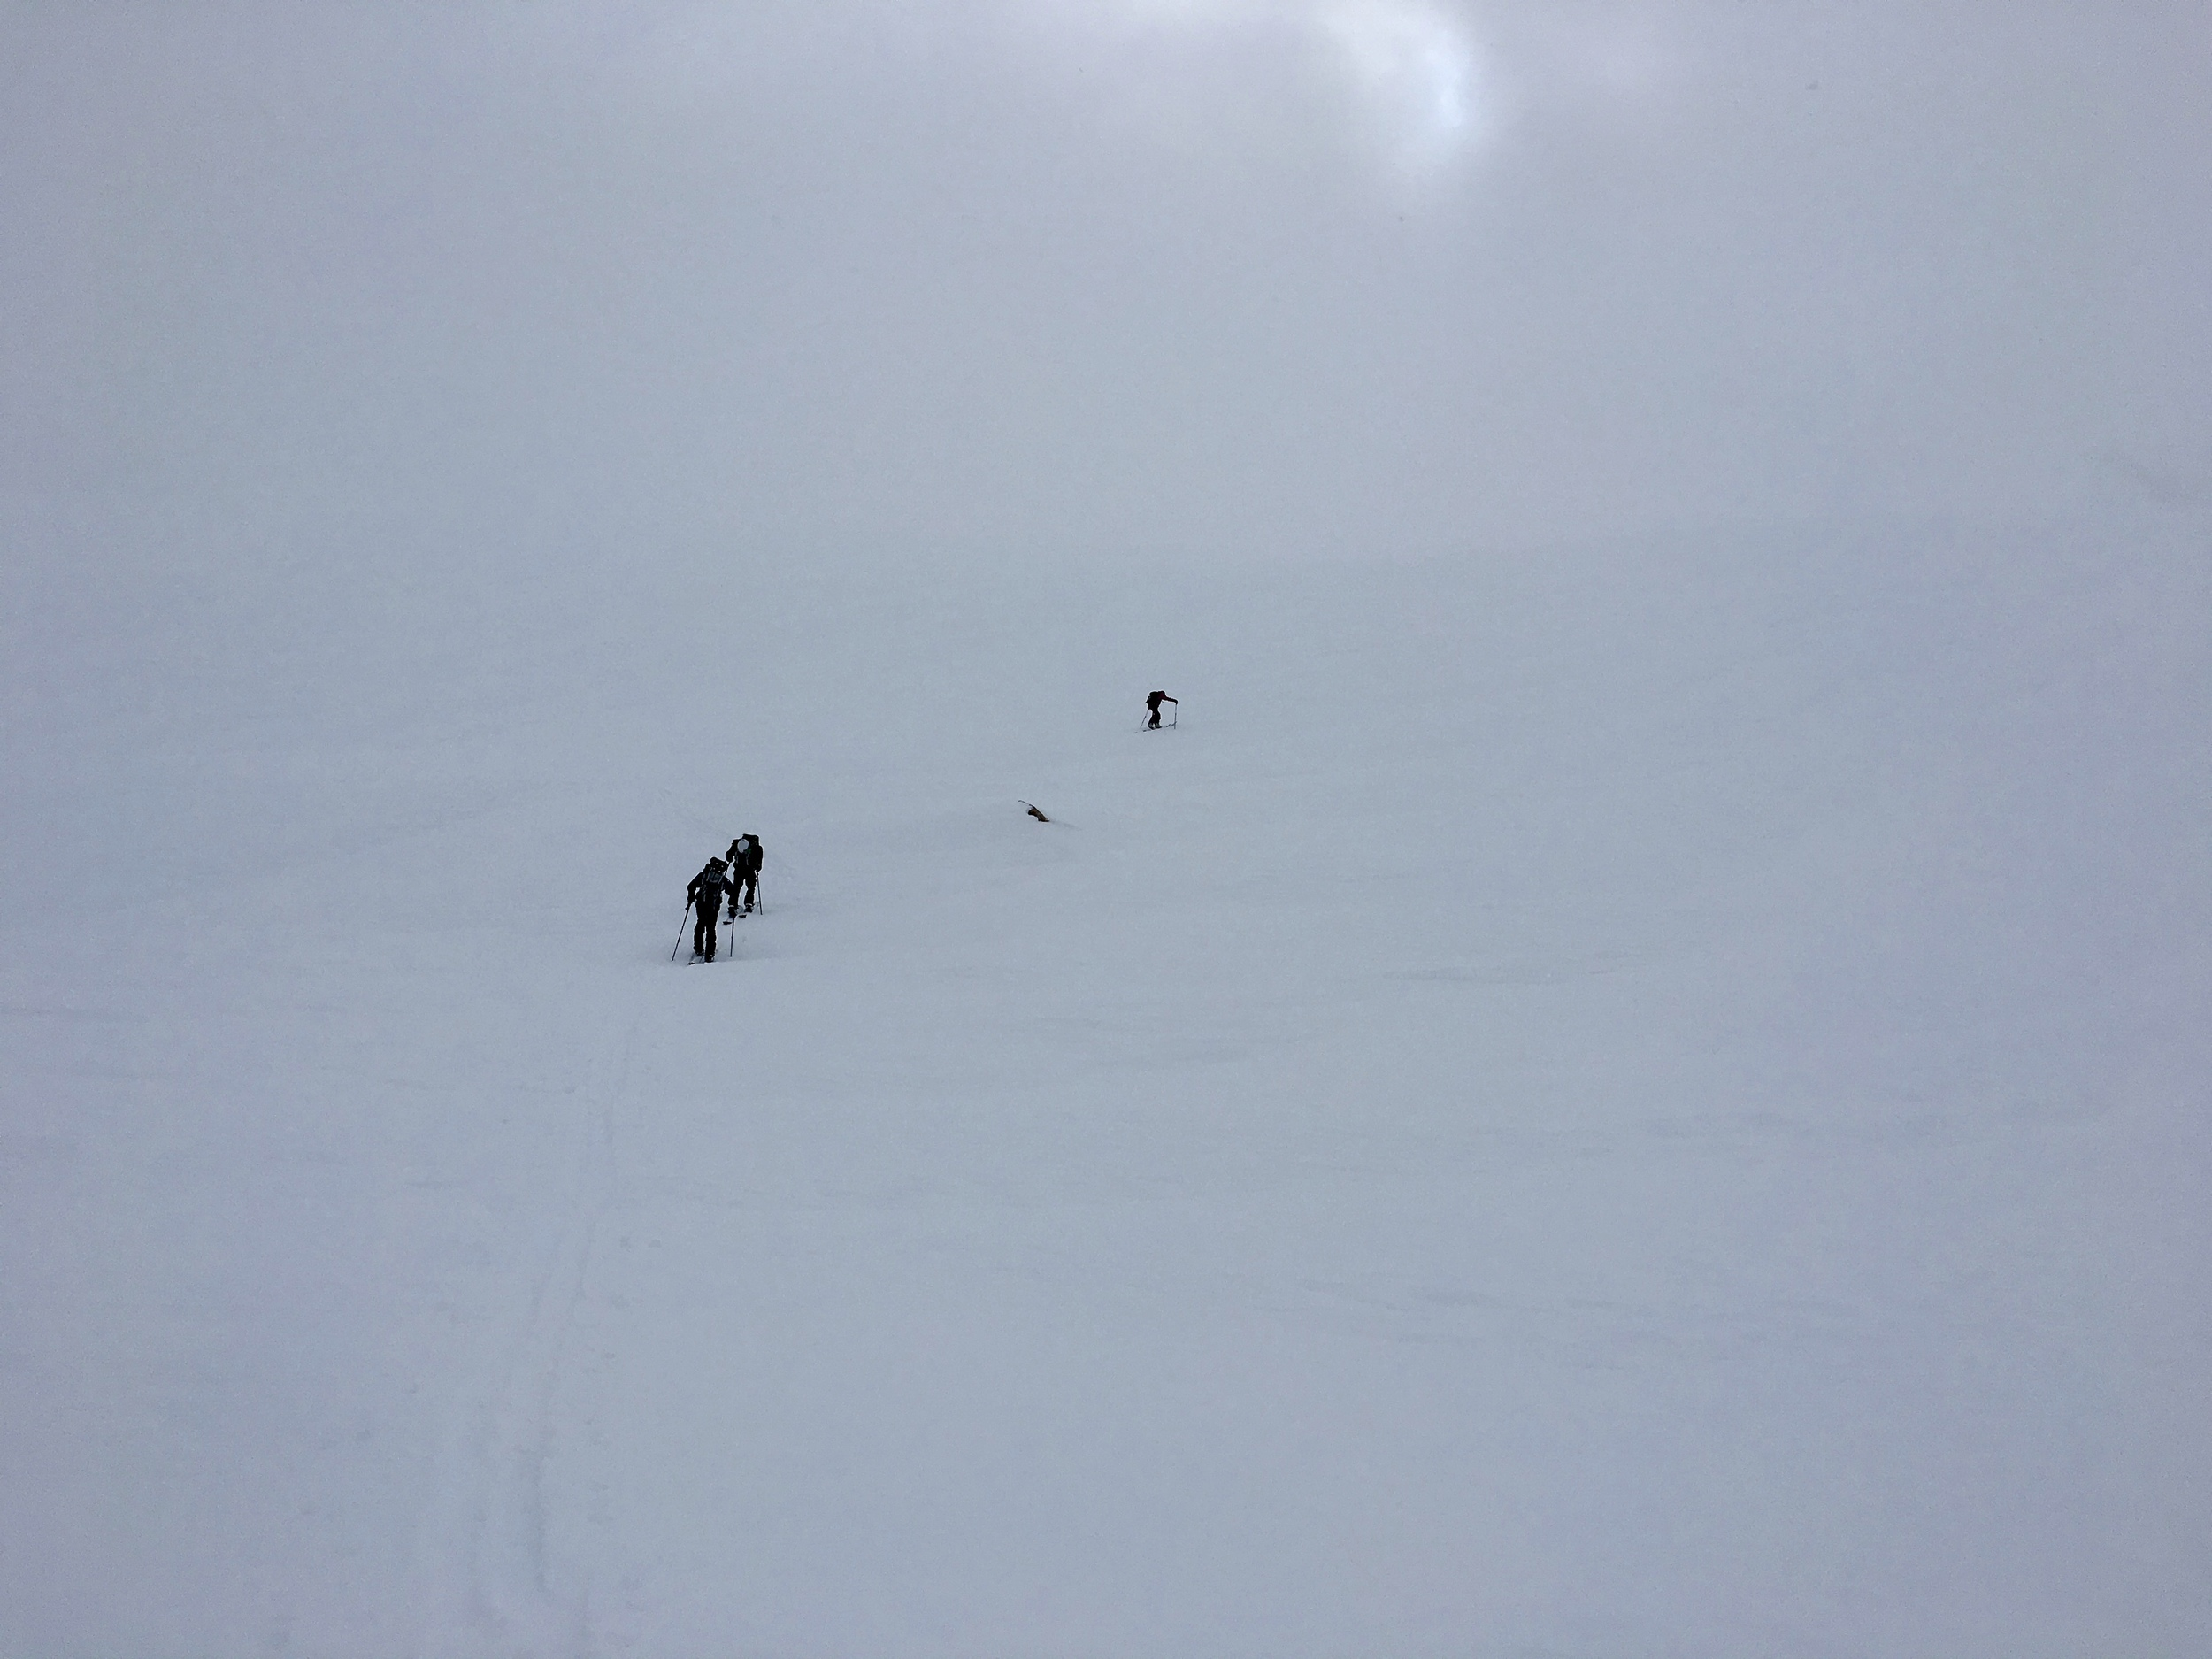 Heading ip Young Peak in straight whiteout conditions   Photo:Zach